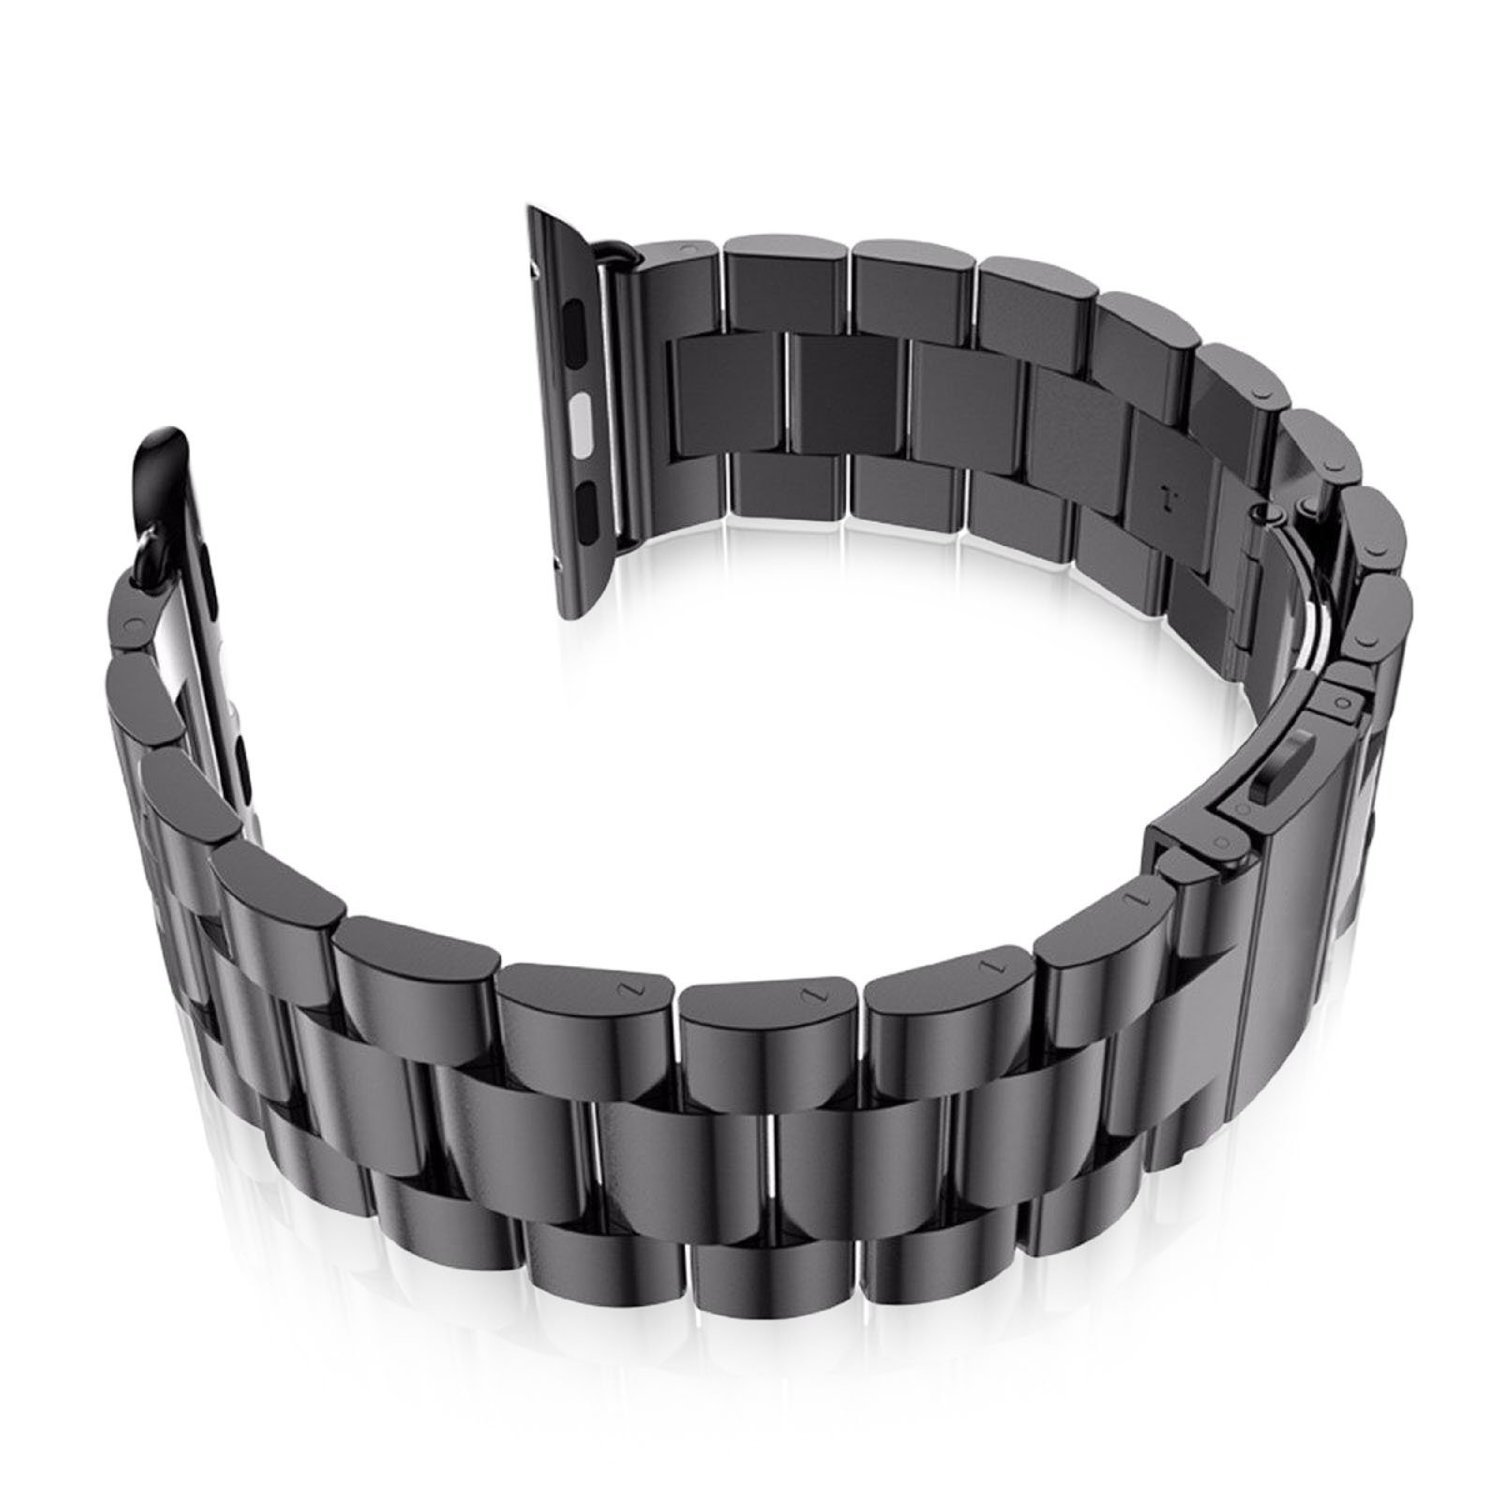 Leefrei Stainless Steel Replacement Strap Watch Band for 42mm Apple Watch Series 3 Series 2 and Series 1 - Black by Leefrei (Image #4)